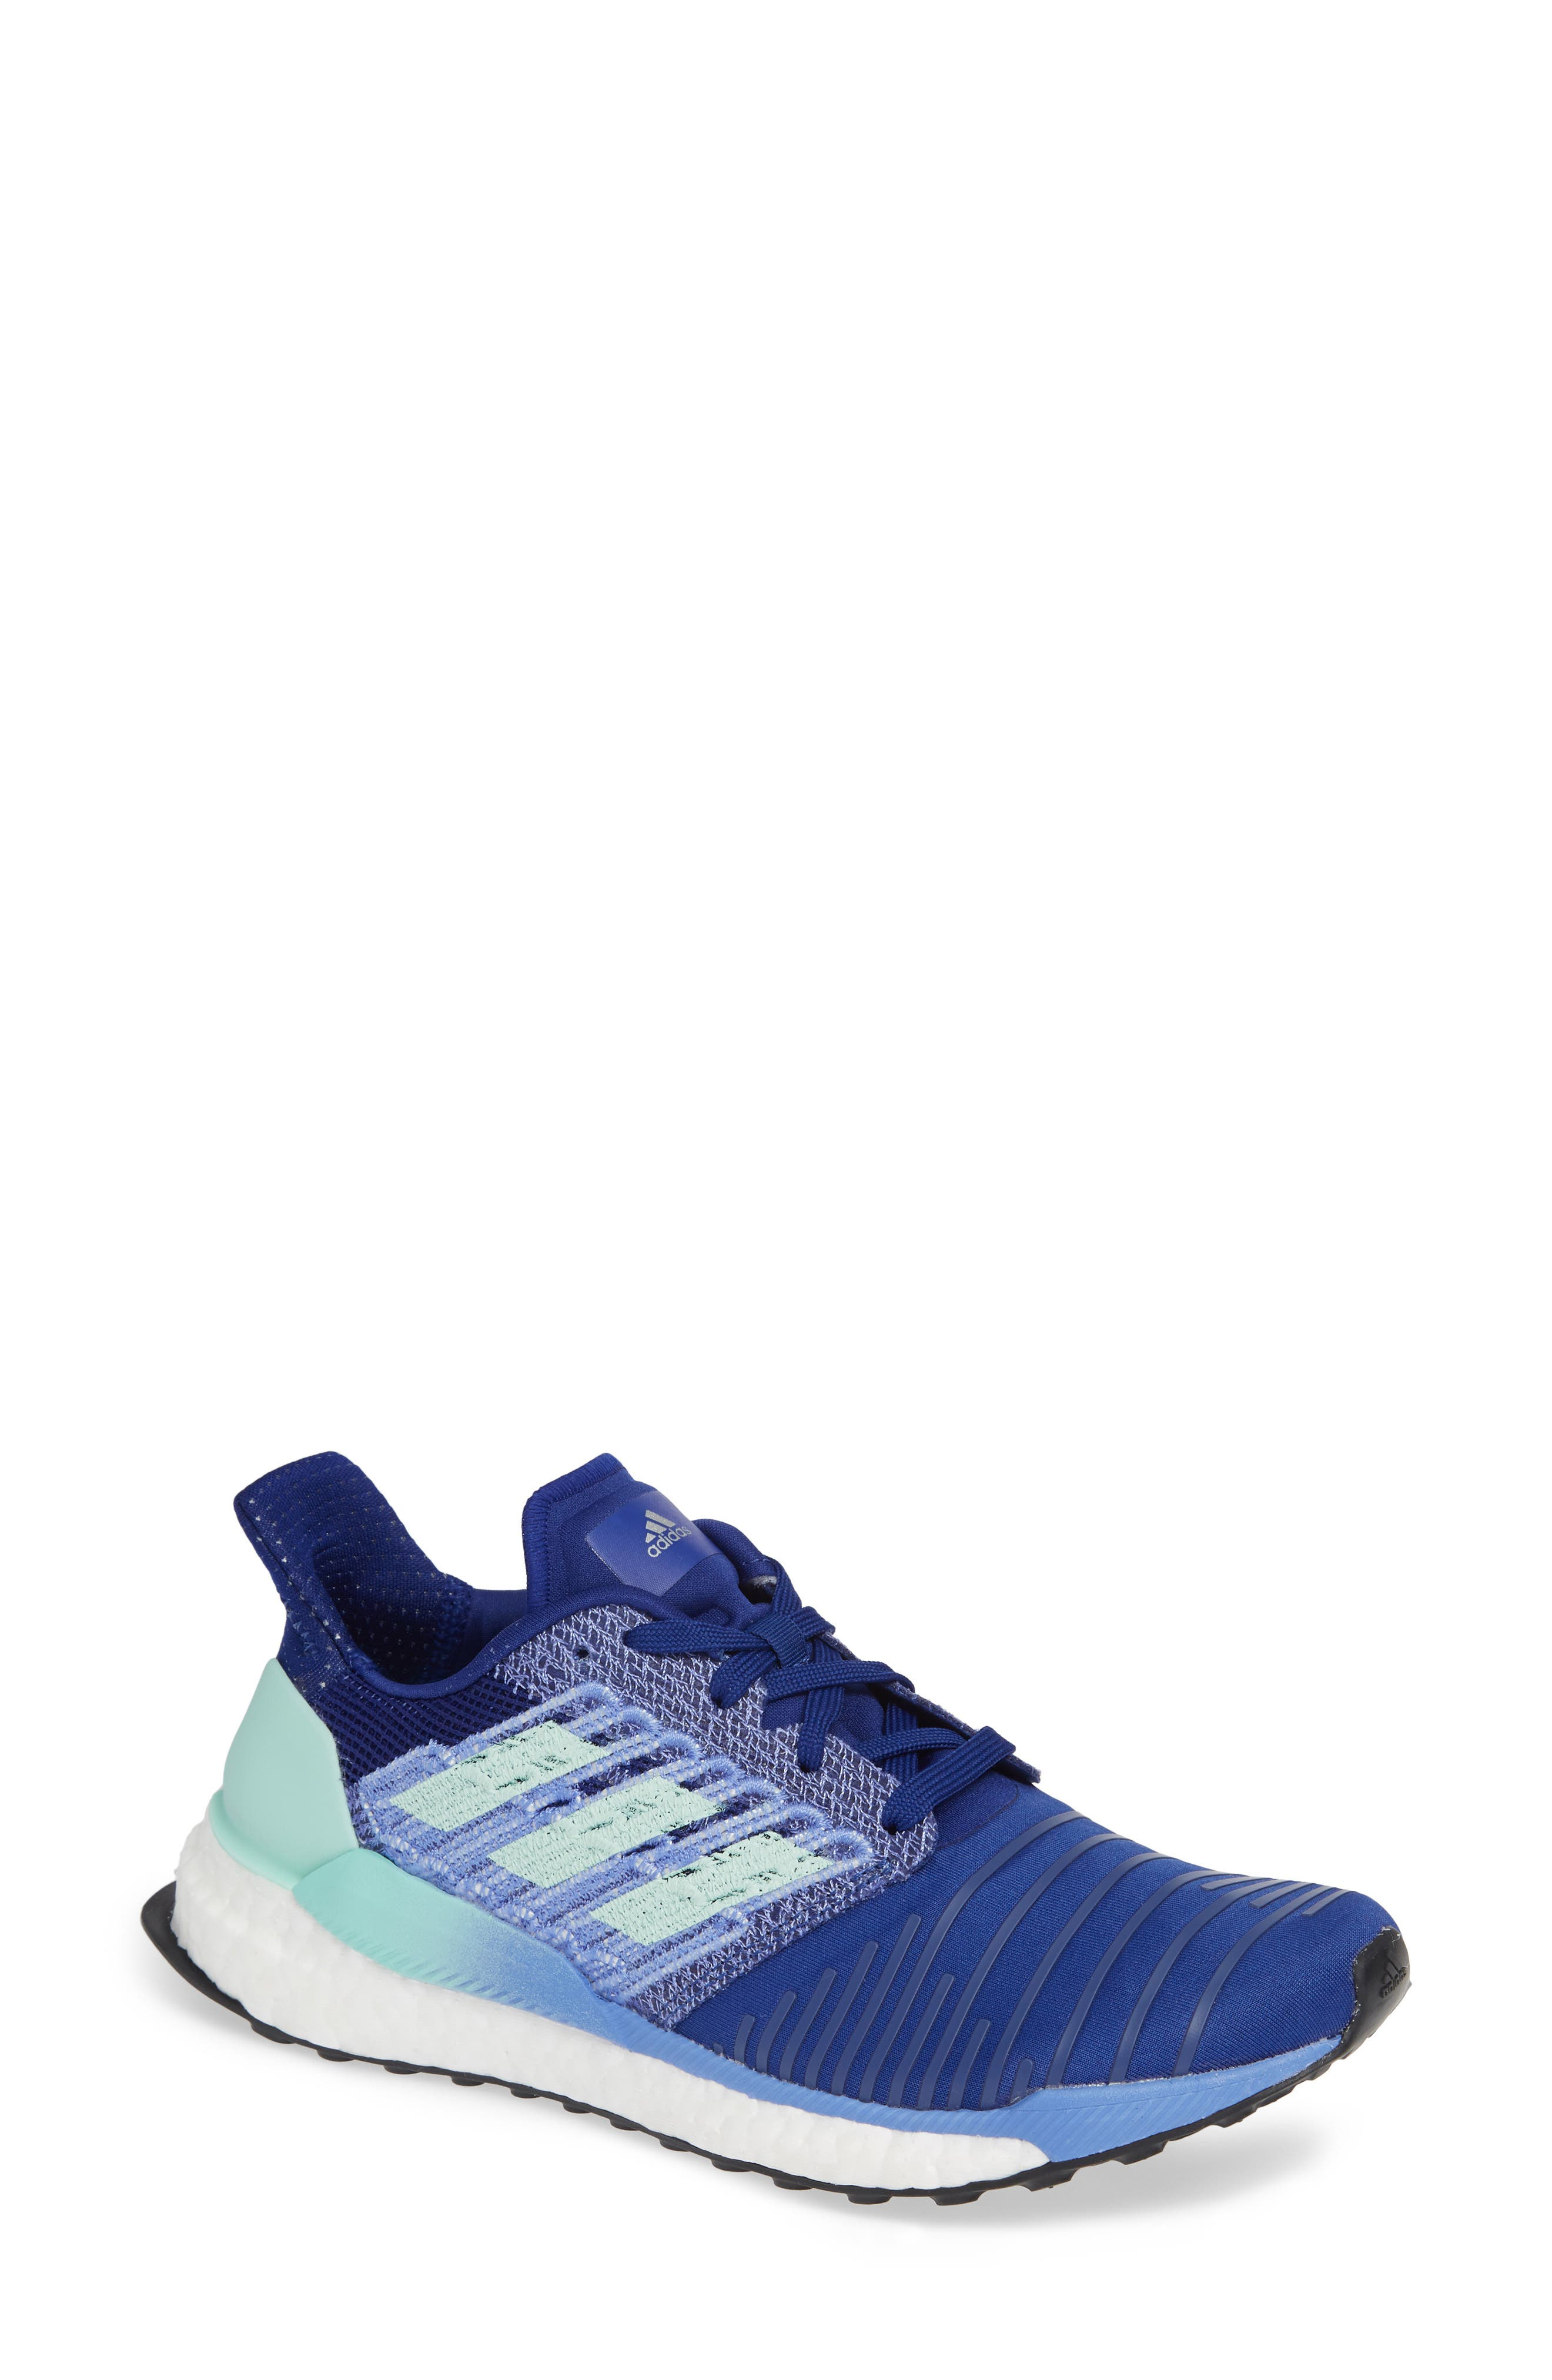 Solarboost Running Shoe,                         Main,                         color, MYSTERY INK/ CLEAR MINT/ LILAC